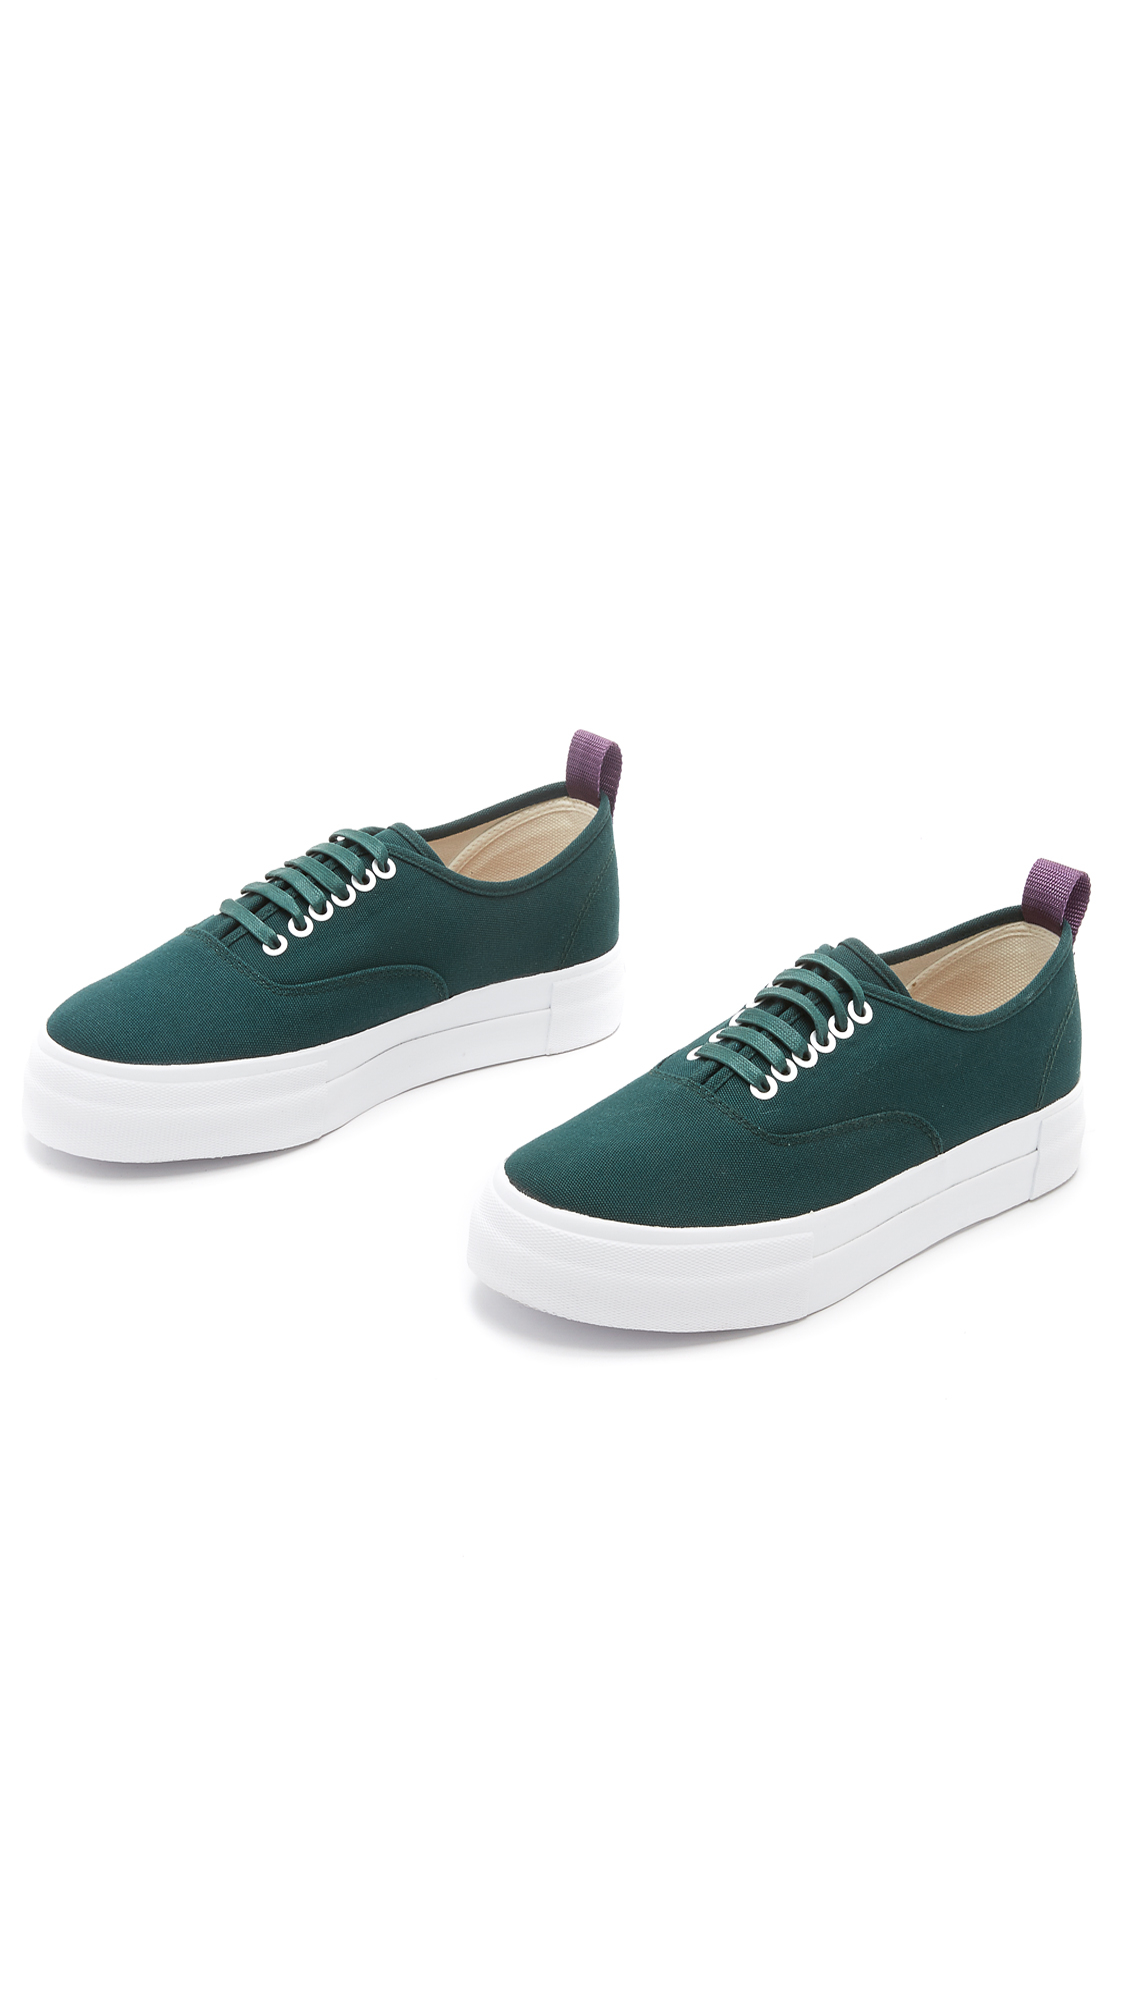 Eytys Mother Canvas Sneakers in Green